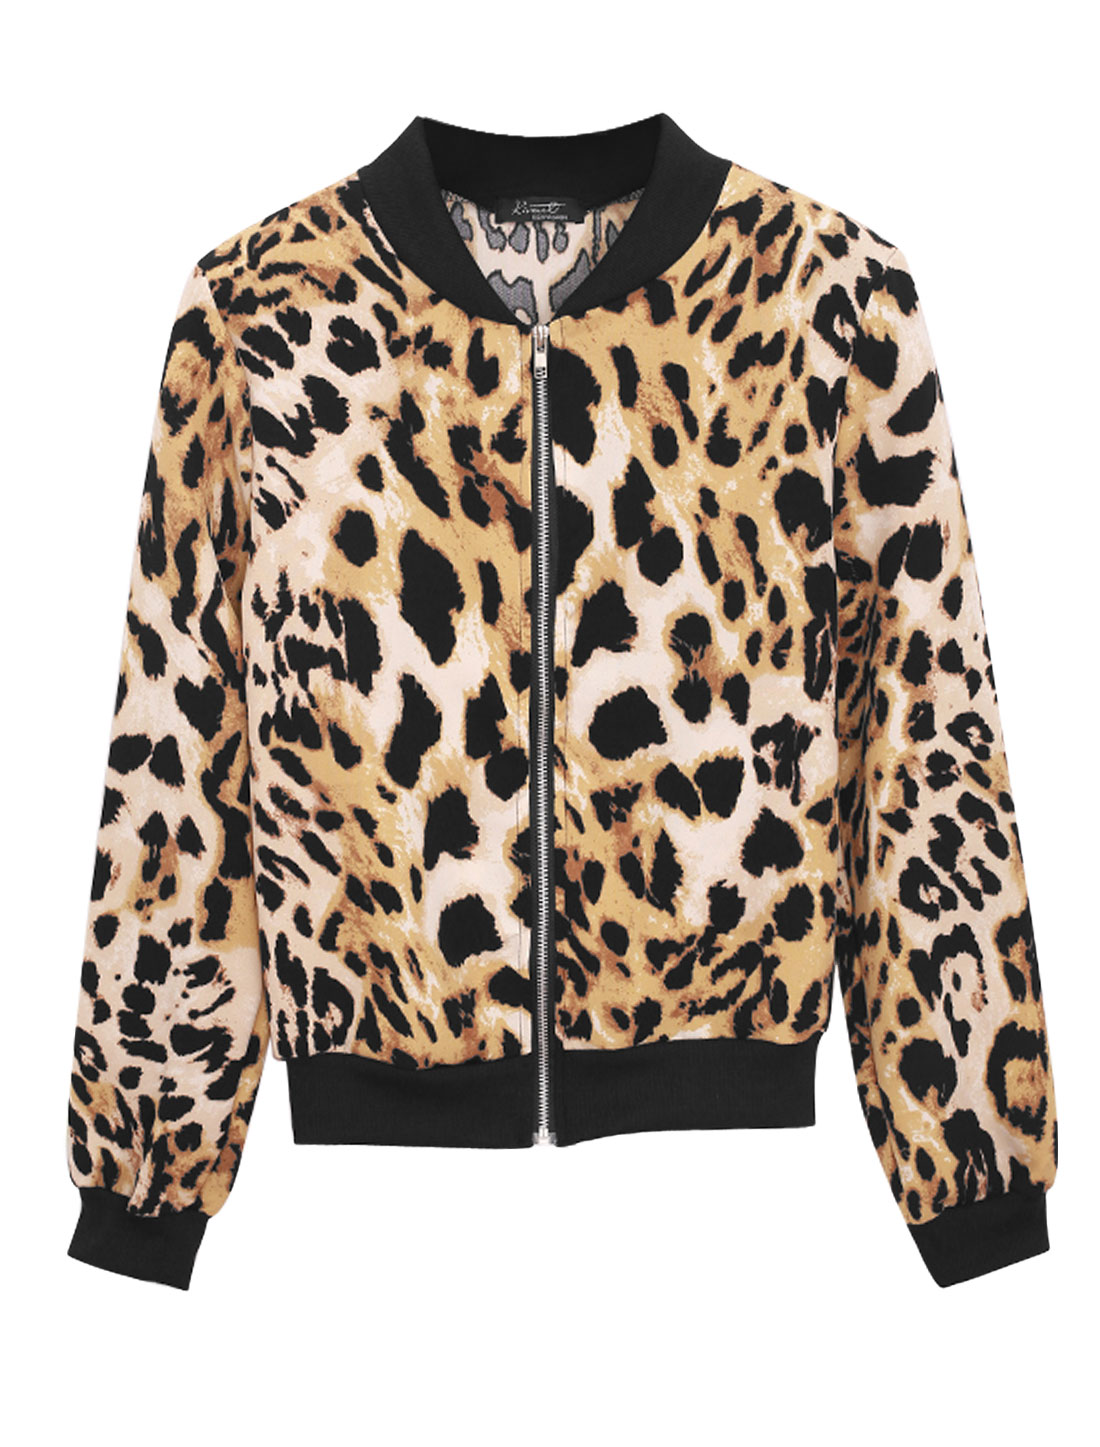 New Style Leopard Pattern Zip Up Fashion Jacket for Lady Camel Black S